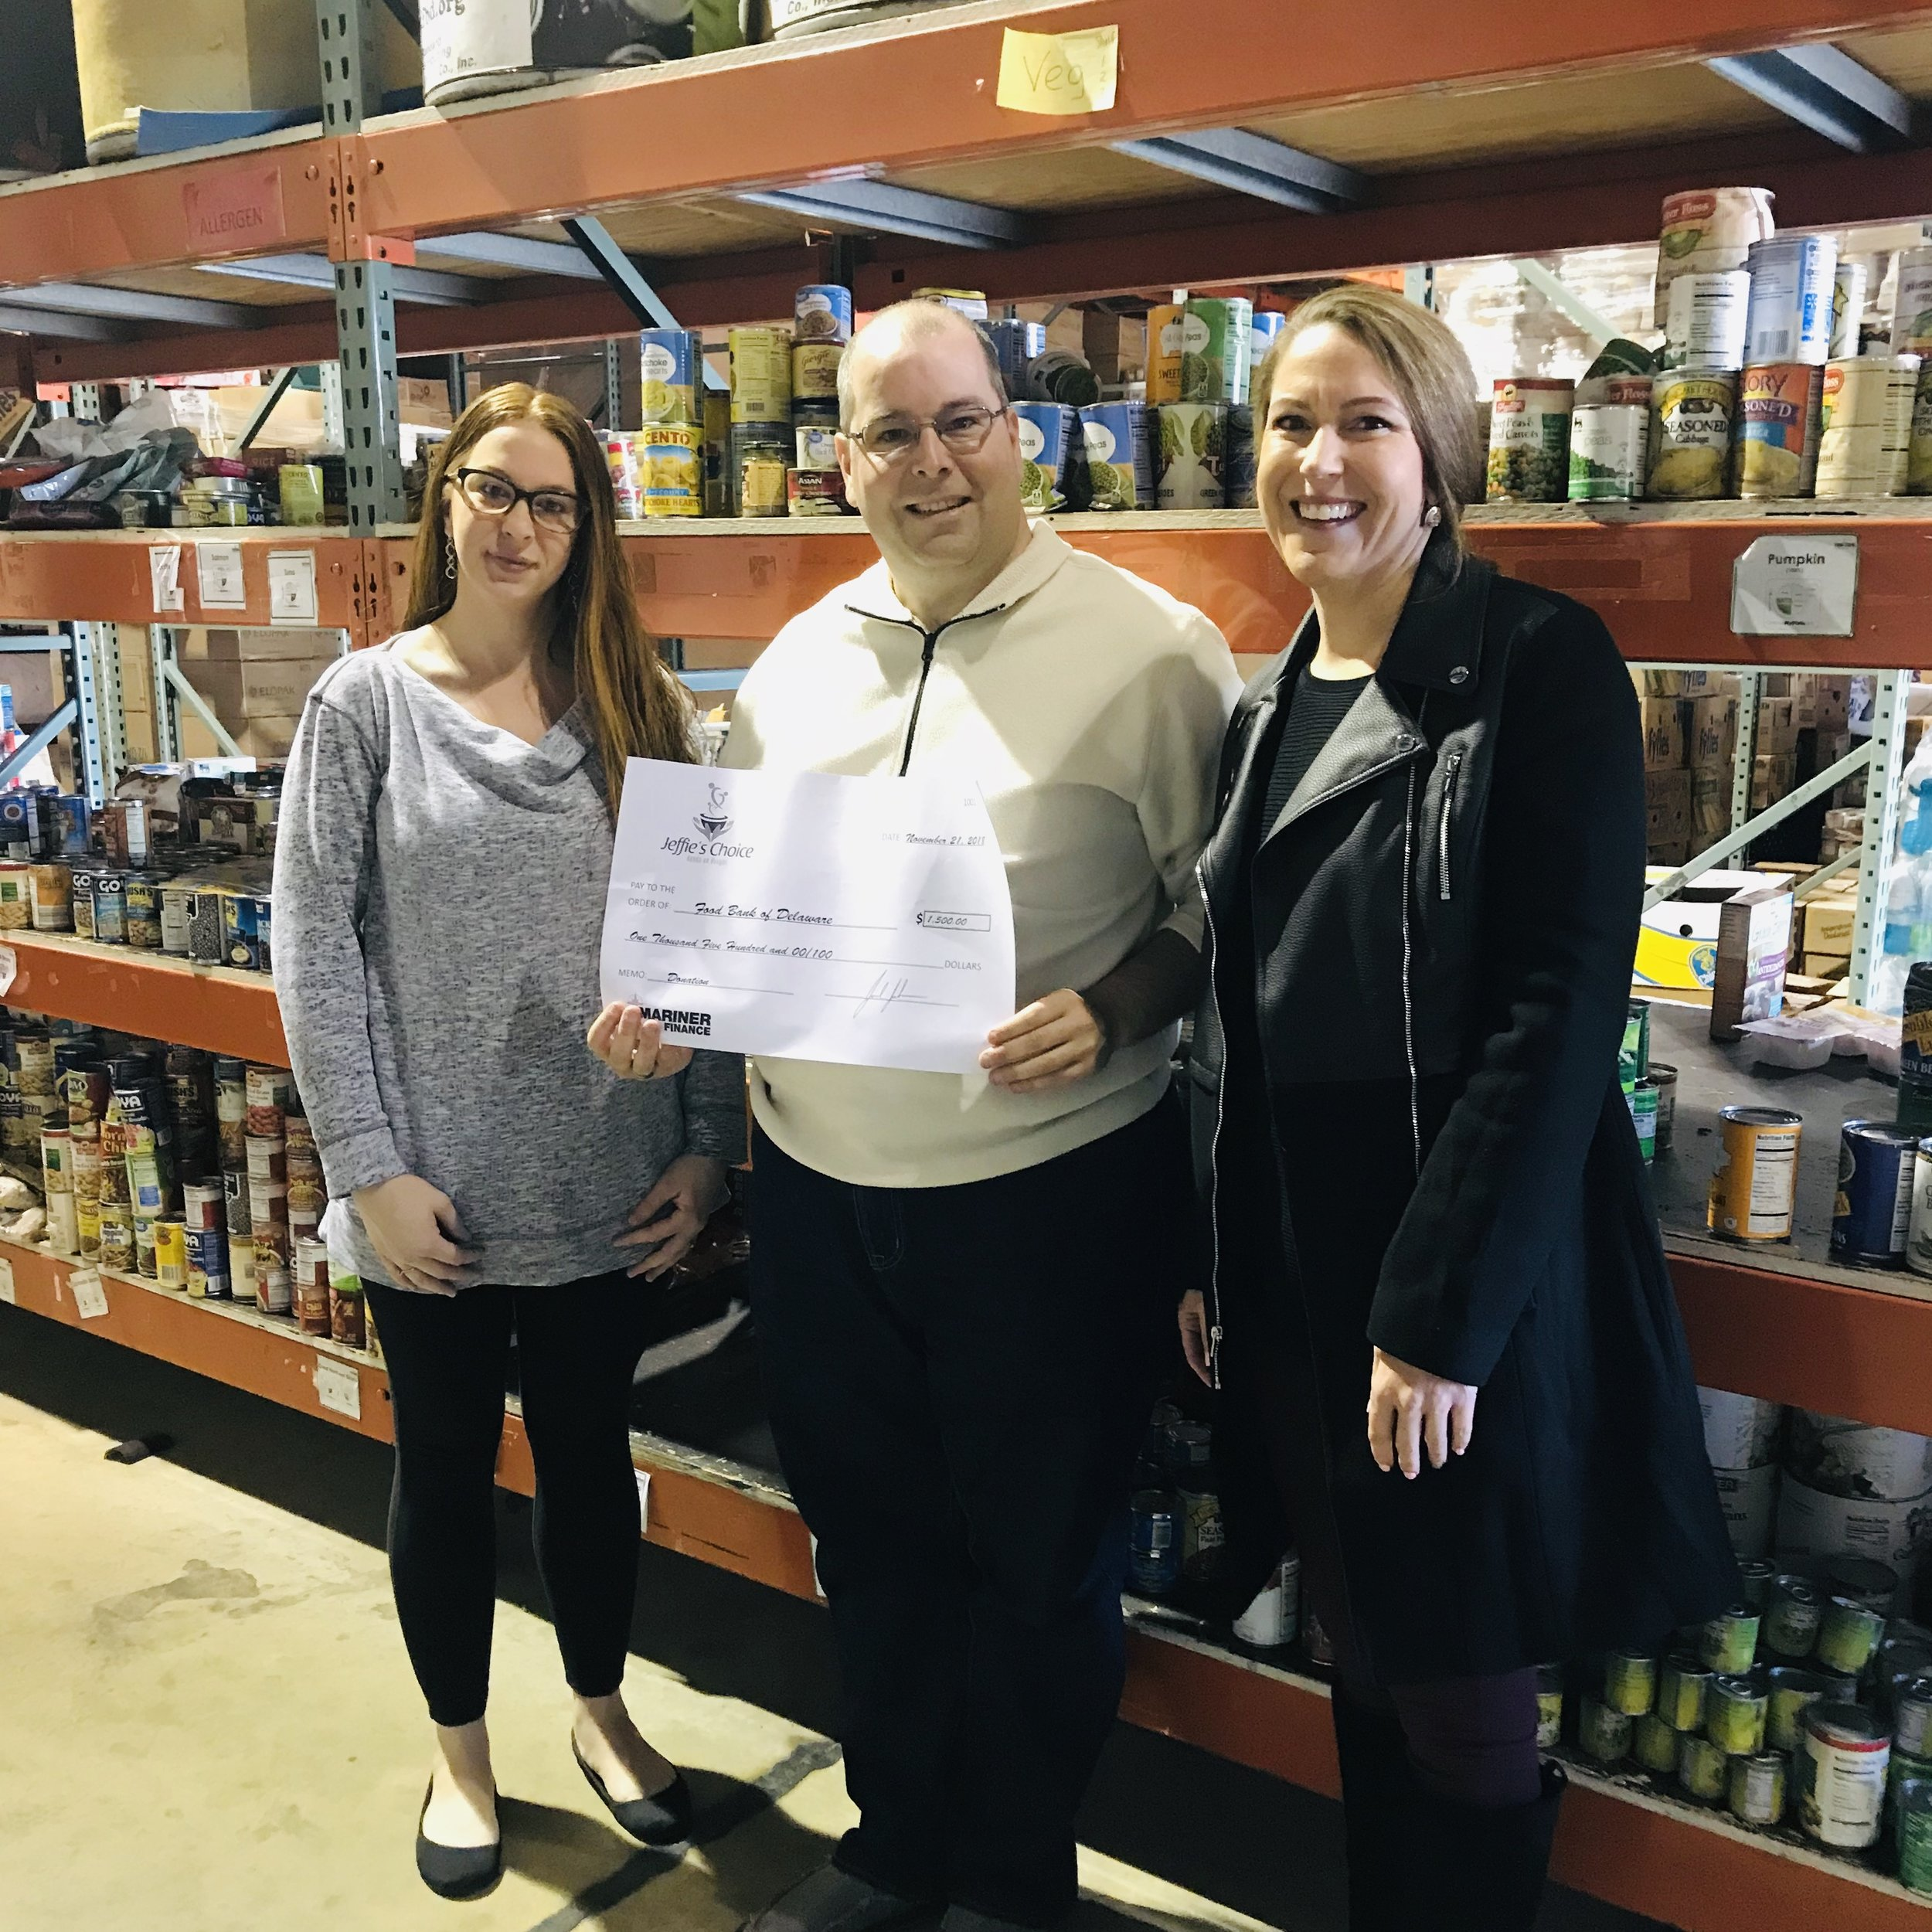 Pictured left to right: Kim Sauer, Milford, DE Branch Manager, Chad Robinson, Community Relations Manager, Milford Food Bank, Elizabeth Rohme, AVP of Audit, Mariner HQ